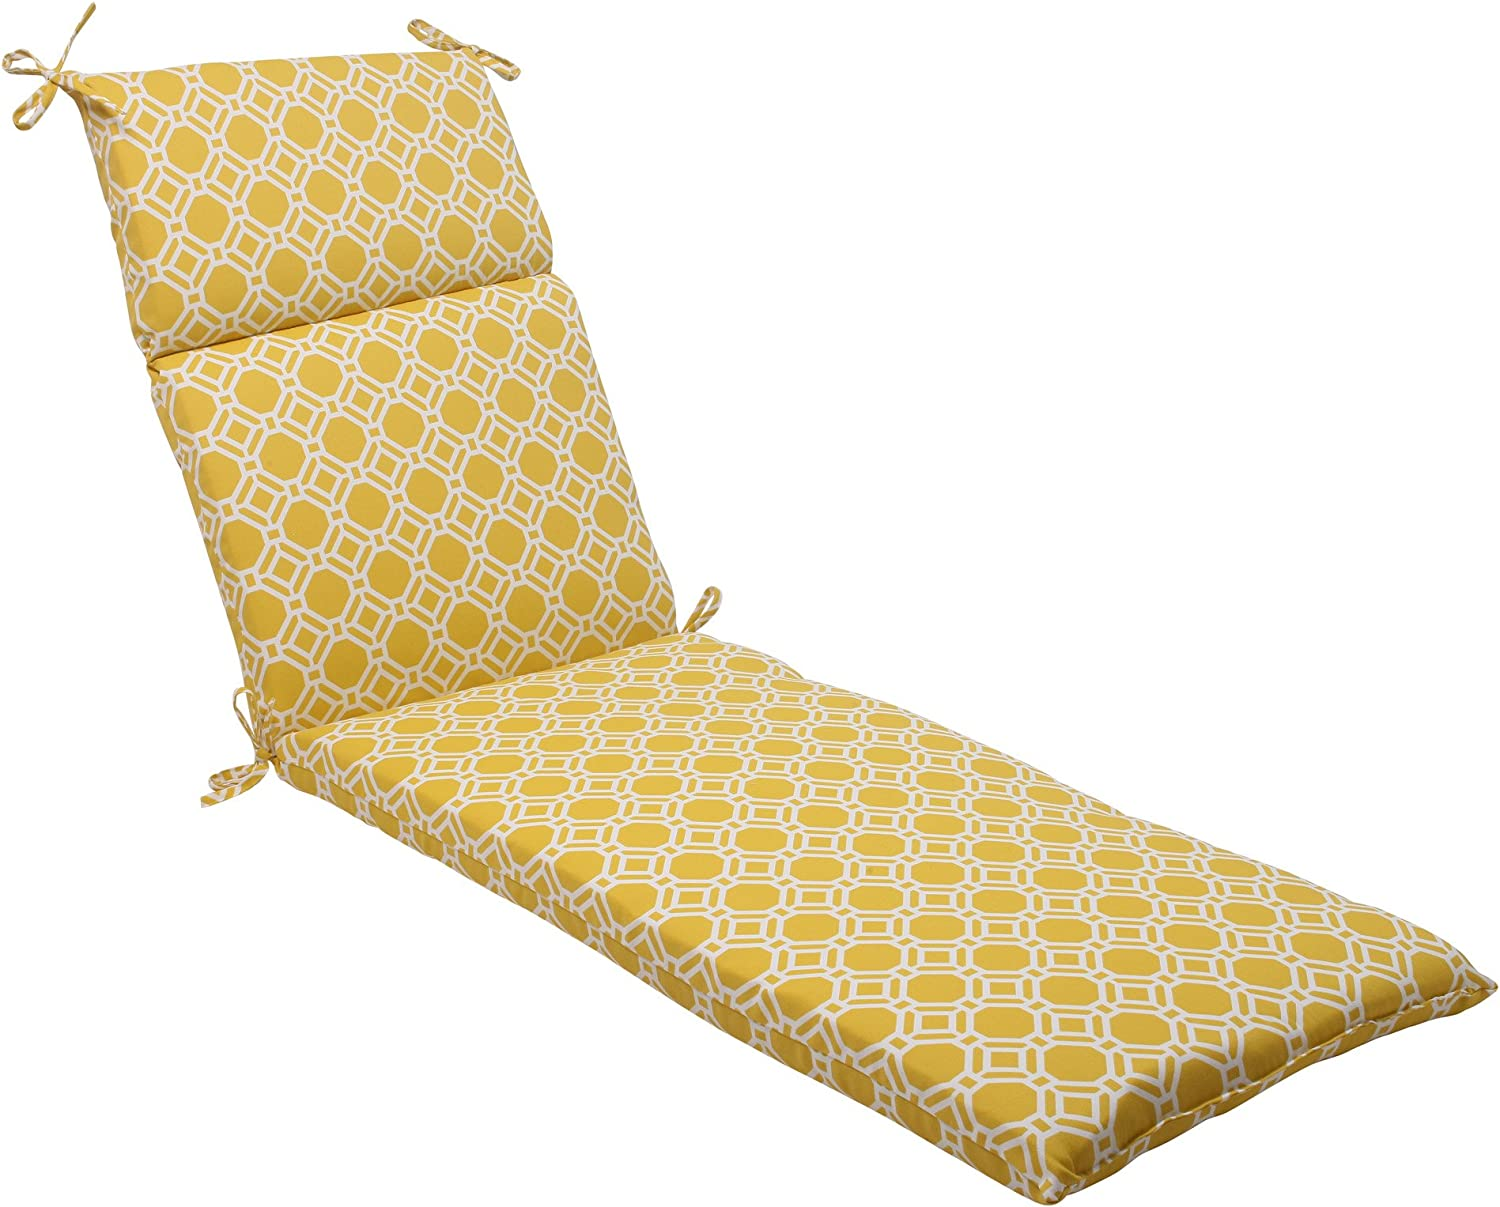 Pillow Perfect Outdoor/Indoor Rossmere Sunshine Chaise Lounge Cushion, 72.5 in. L X 21 in. W X 3 in. D, Yellow